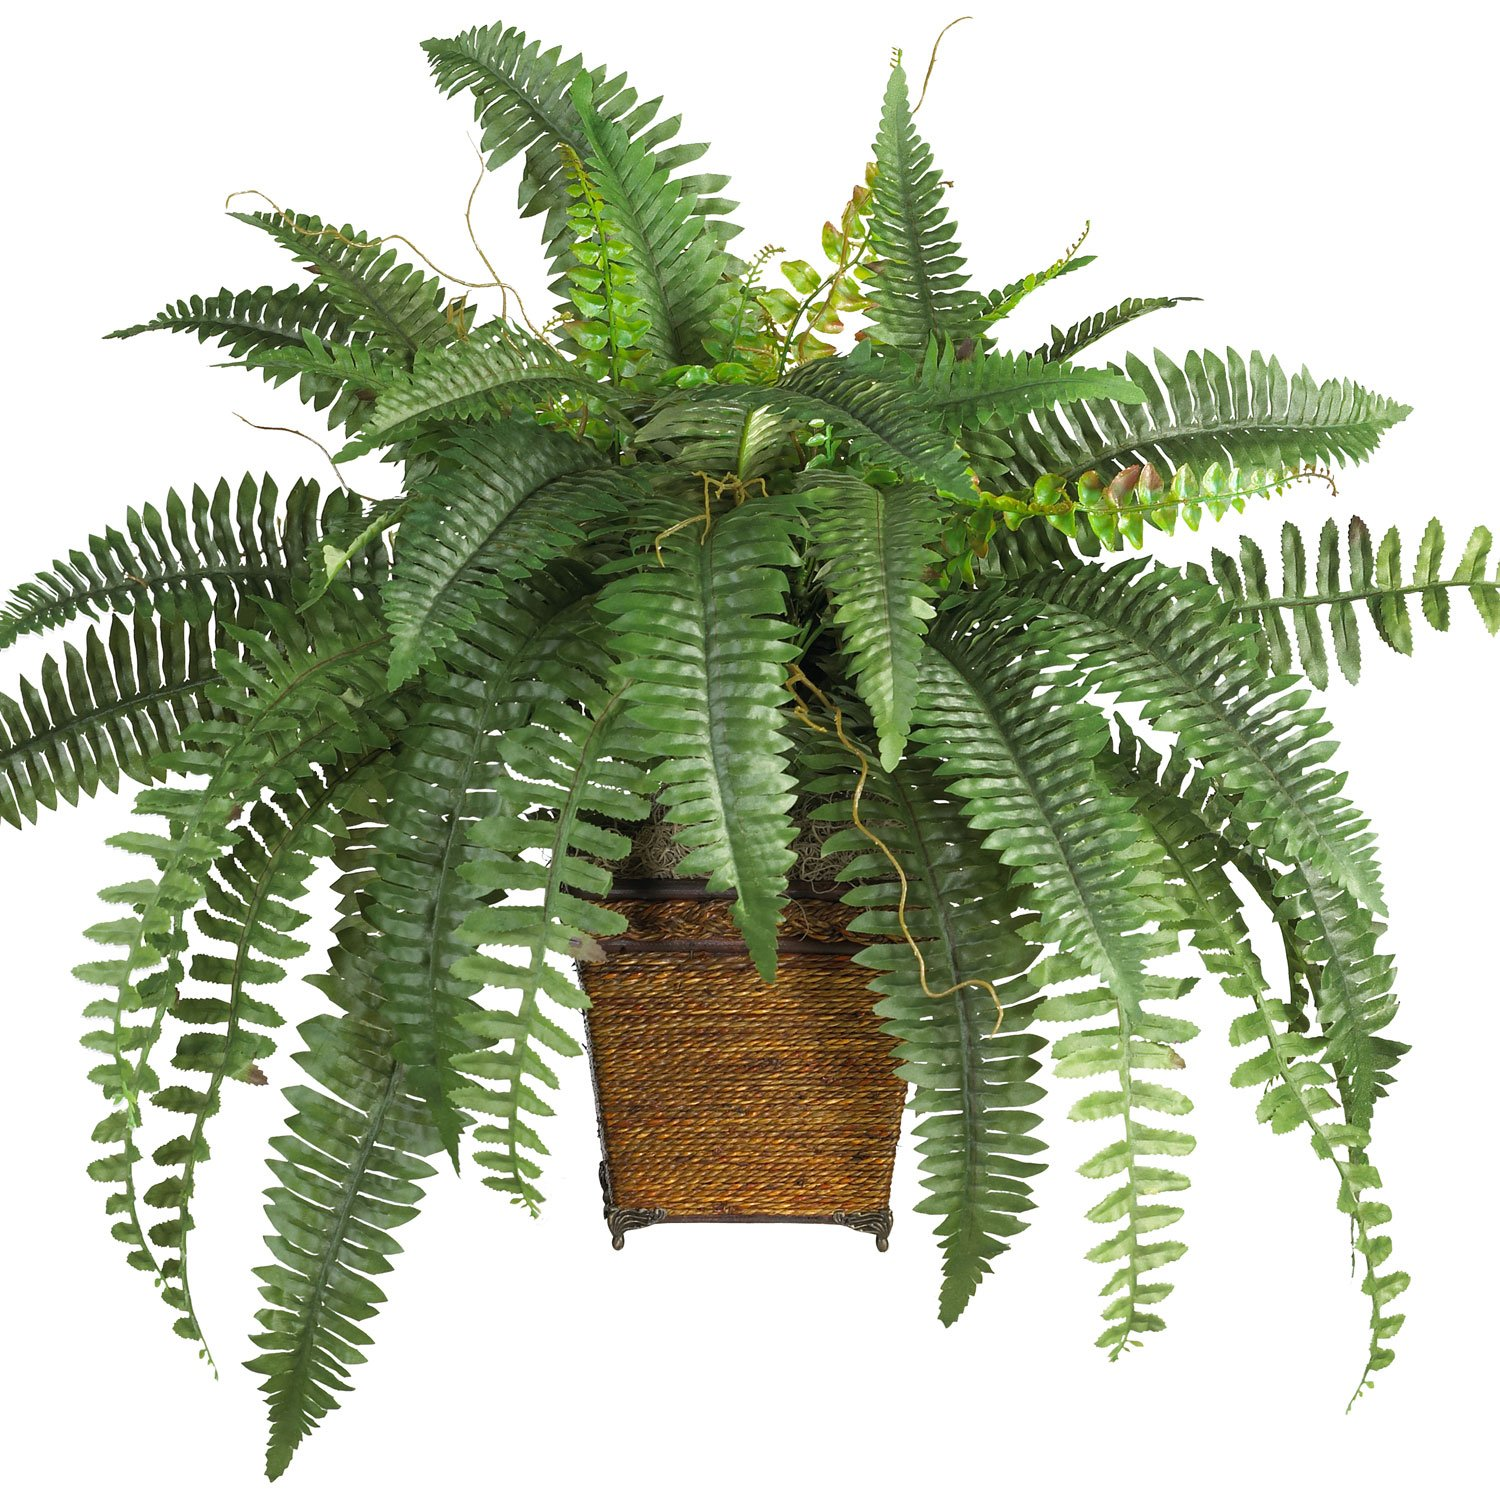 amazoncom nearly natural 6549 boston fern with wicker decorative silk plant green home kitchen artificial plants for office decor